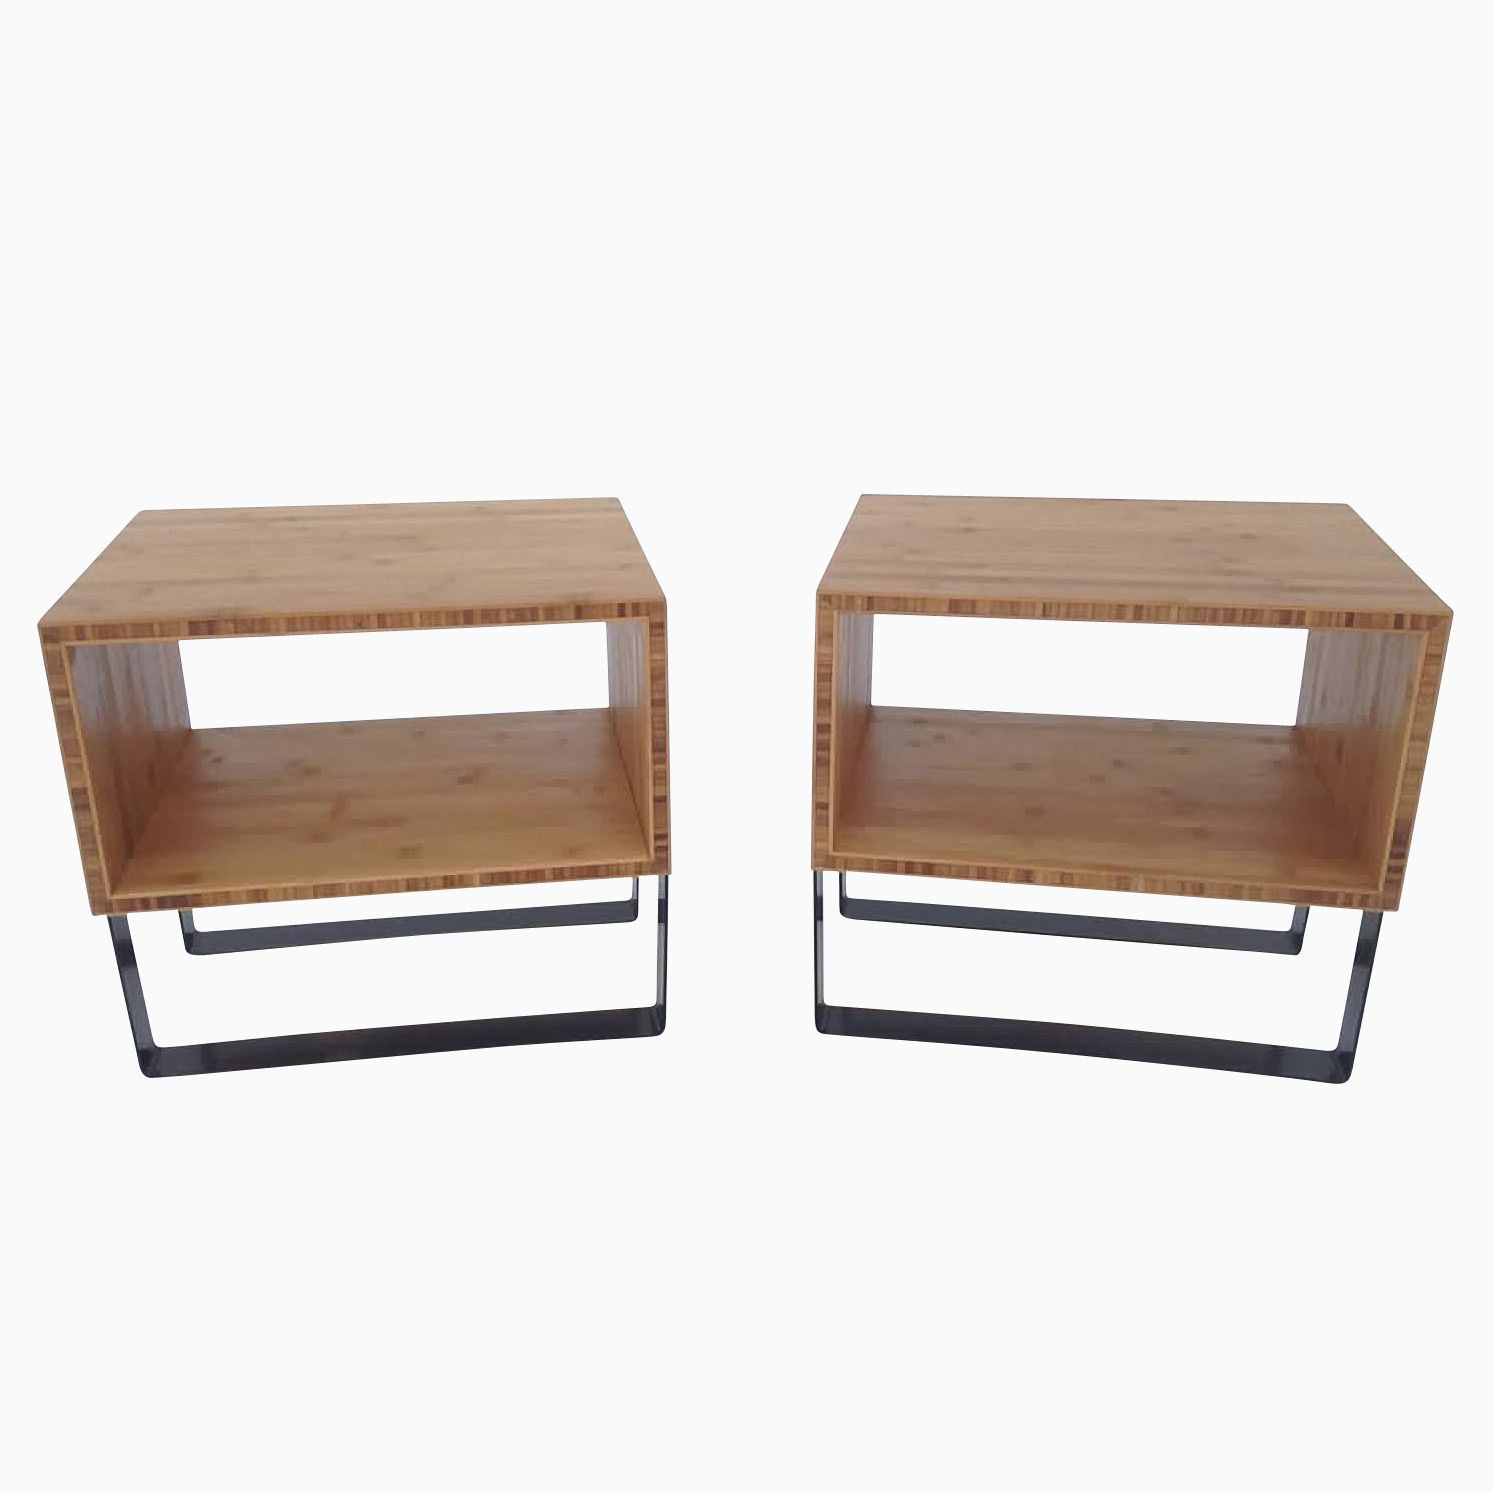 Bedside Tables Modern Buy A Custom Pair Of Open Bedside Tables Mid Century